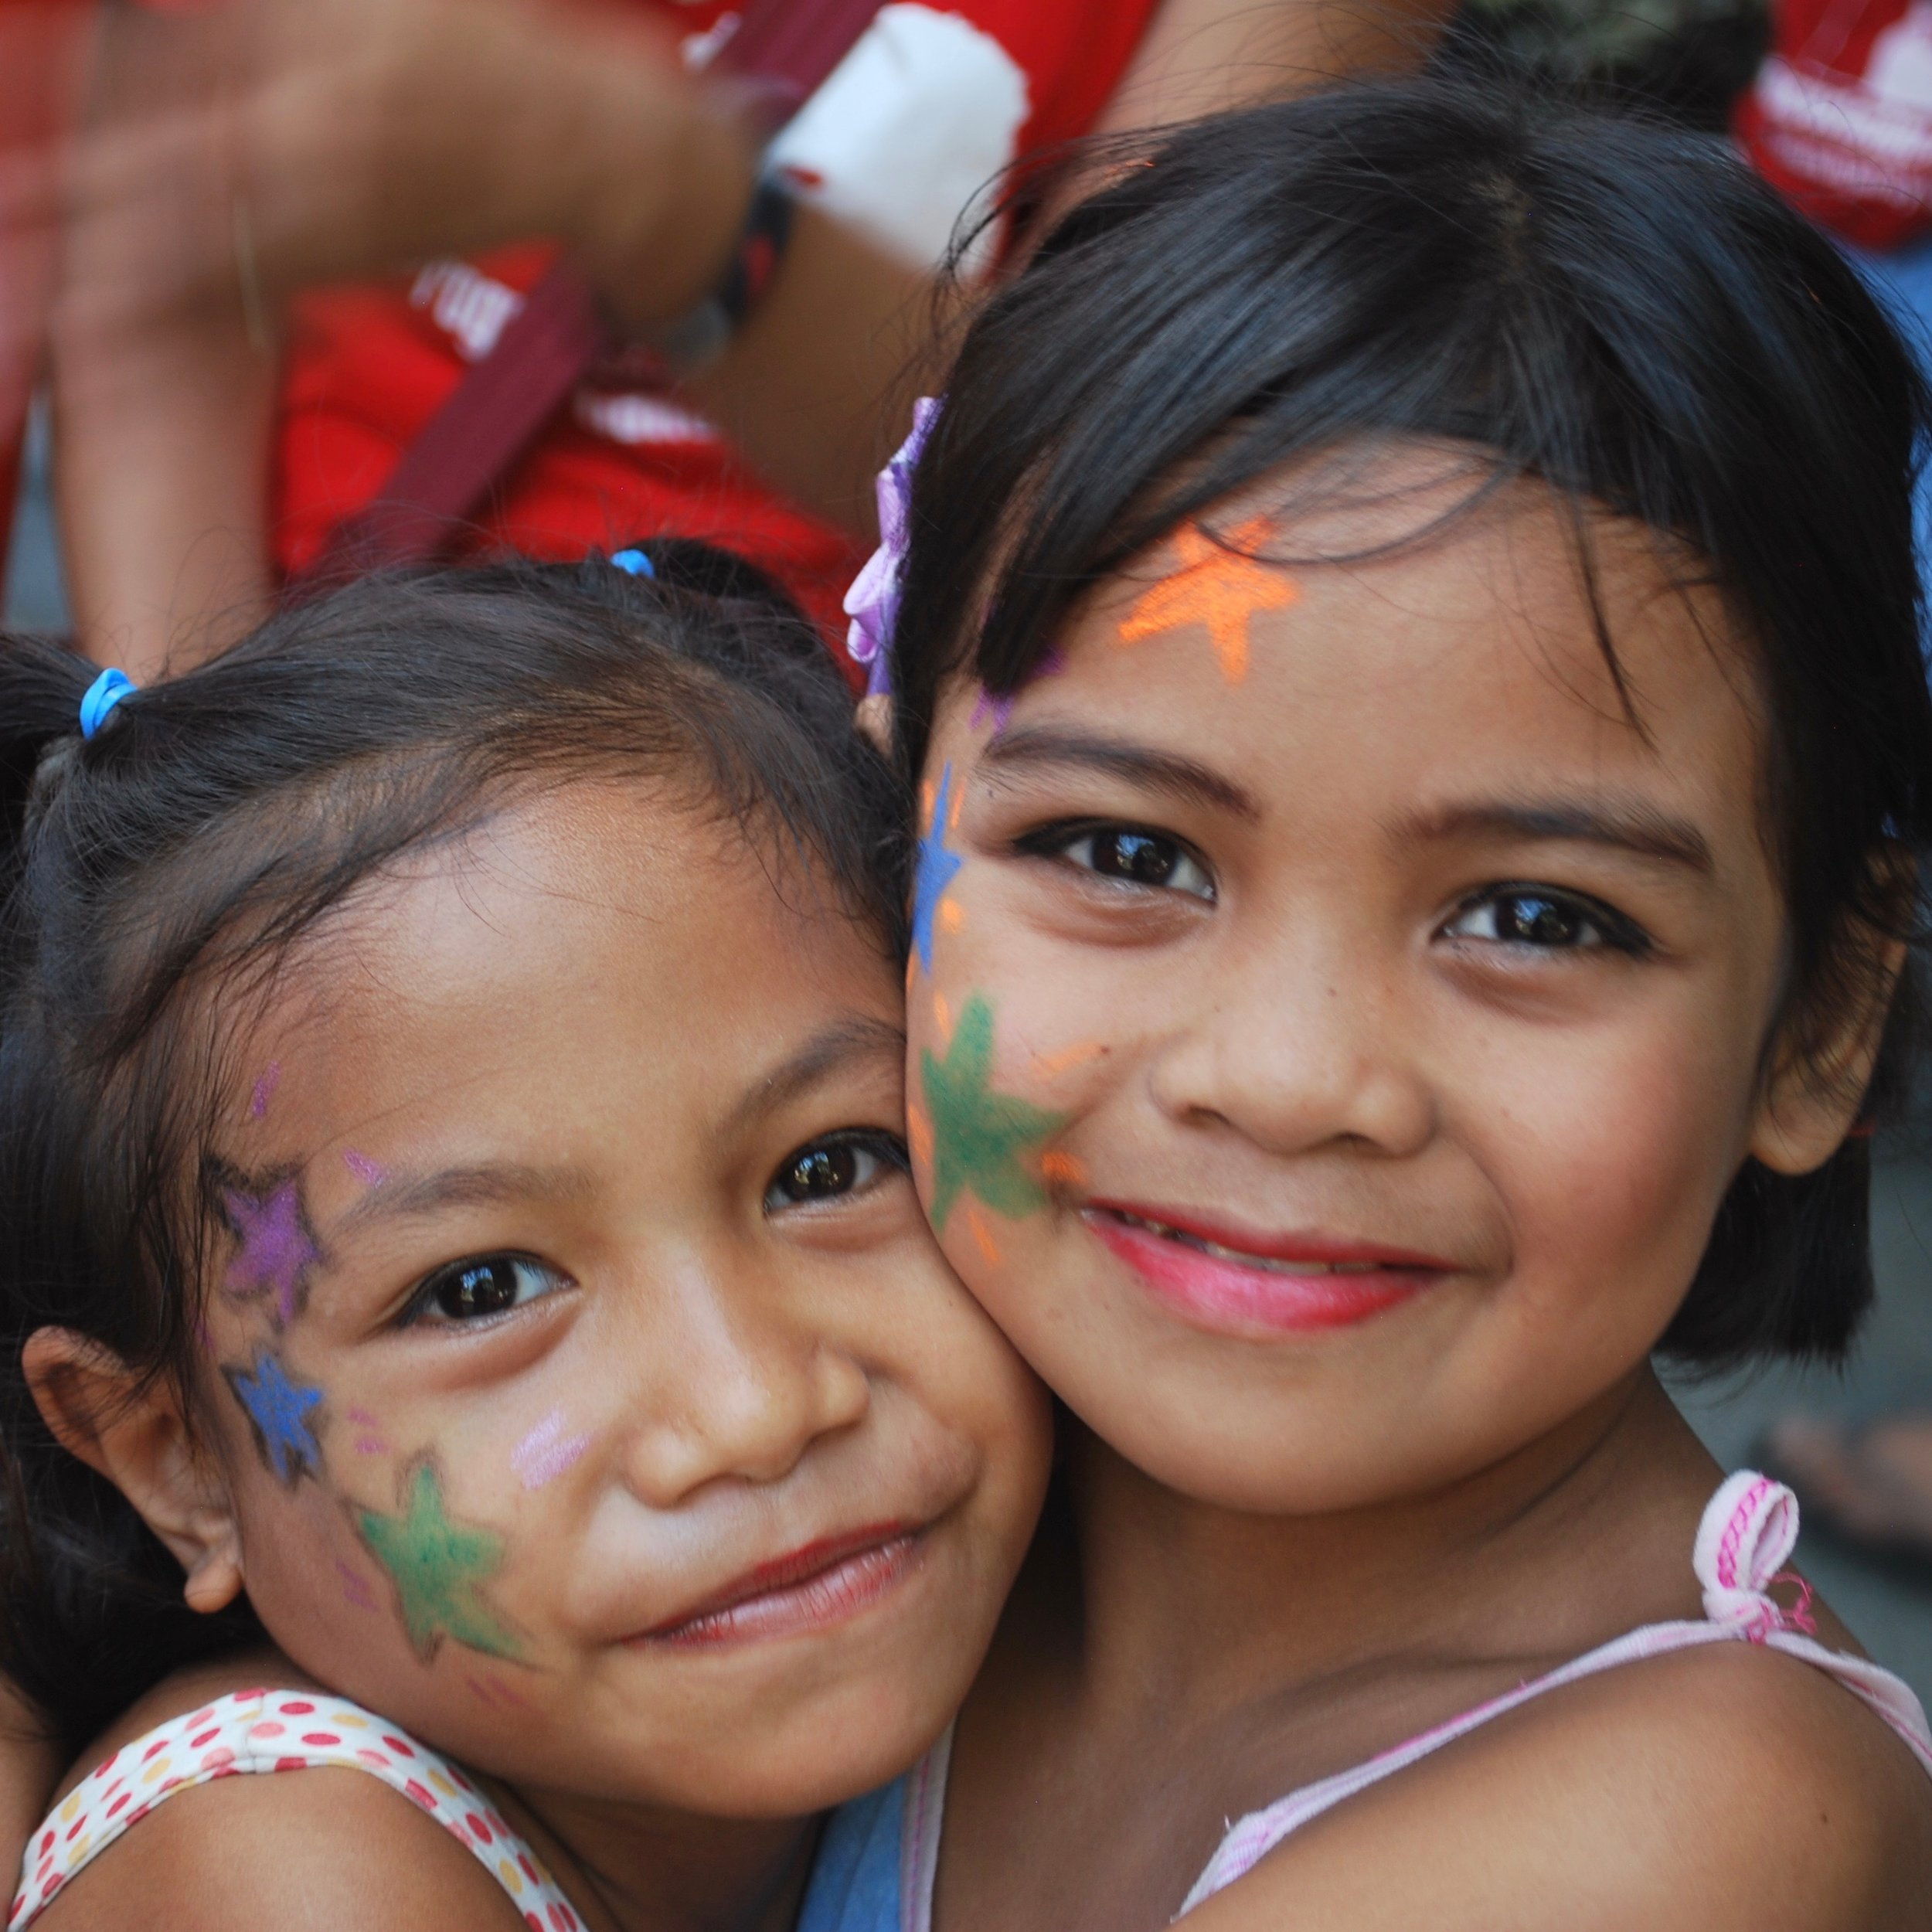 Partake and Celebrate - The poverty-stricken Marala community of Barangay 128 reveals vast subsistence living for its residents. To assist, we provide regular provision of food to its 300 children.